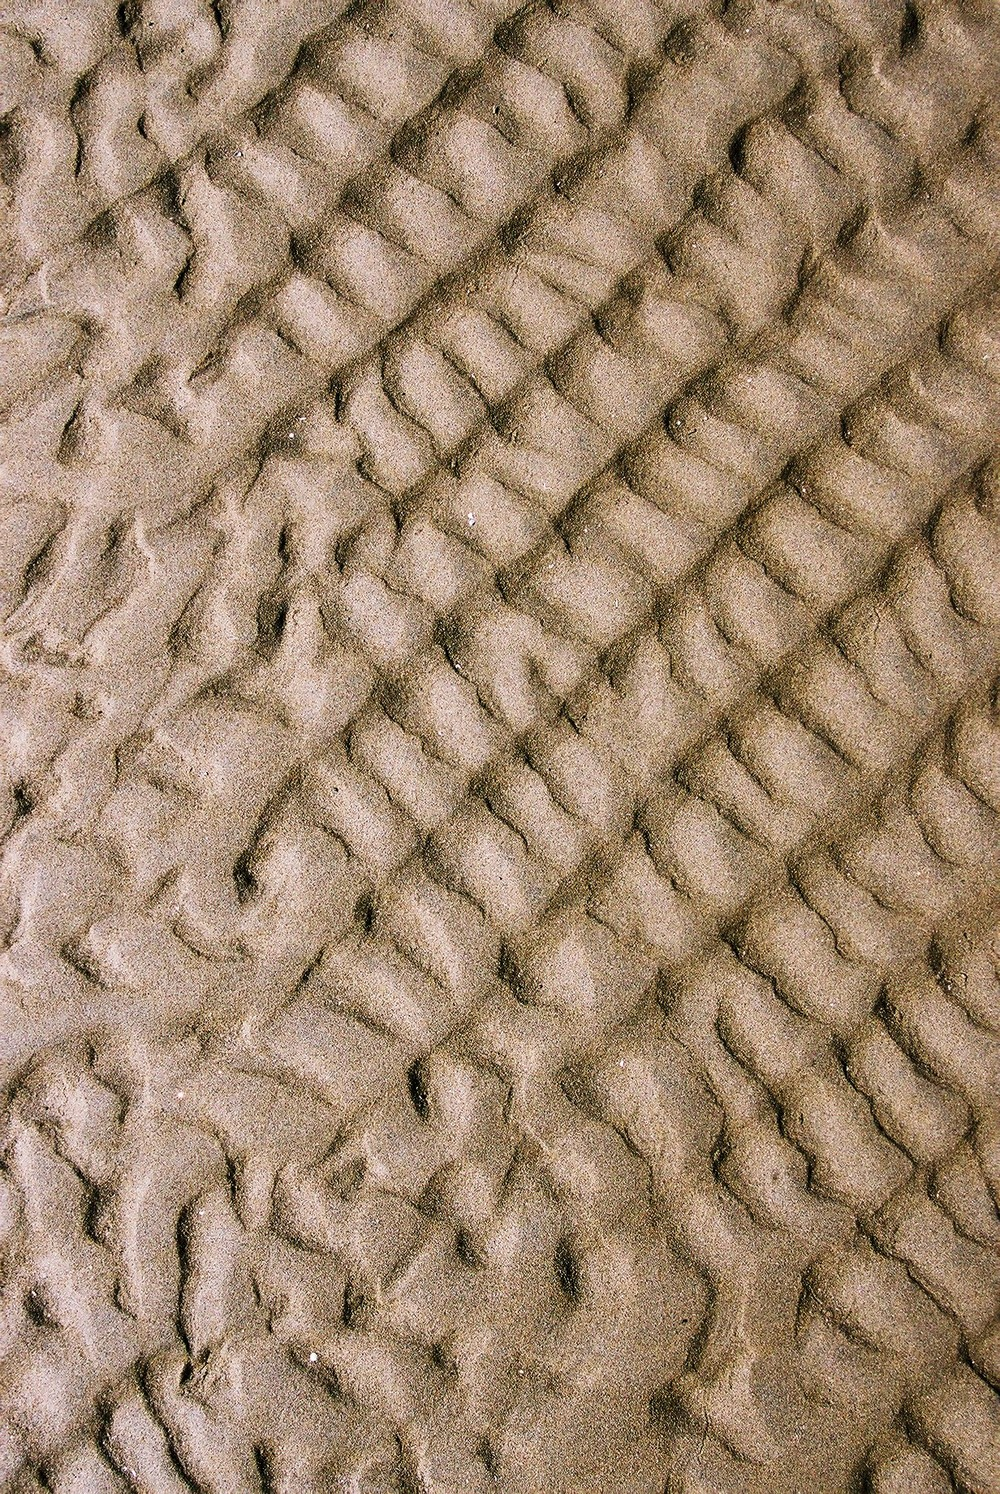 ichnology in the sand.jpg